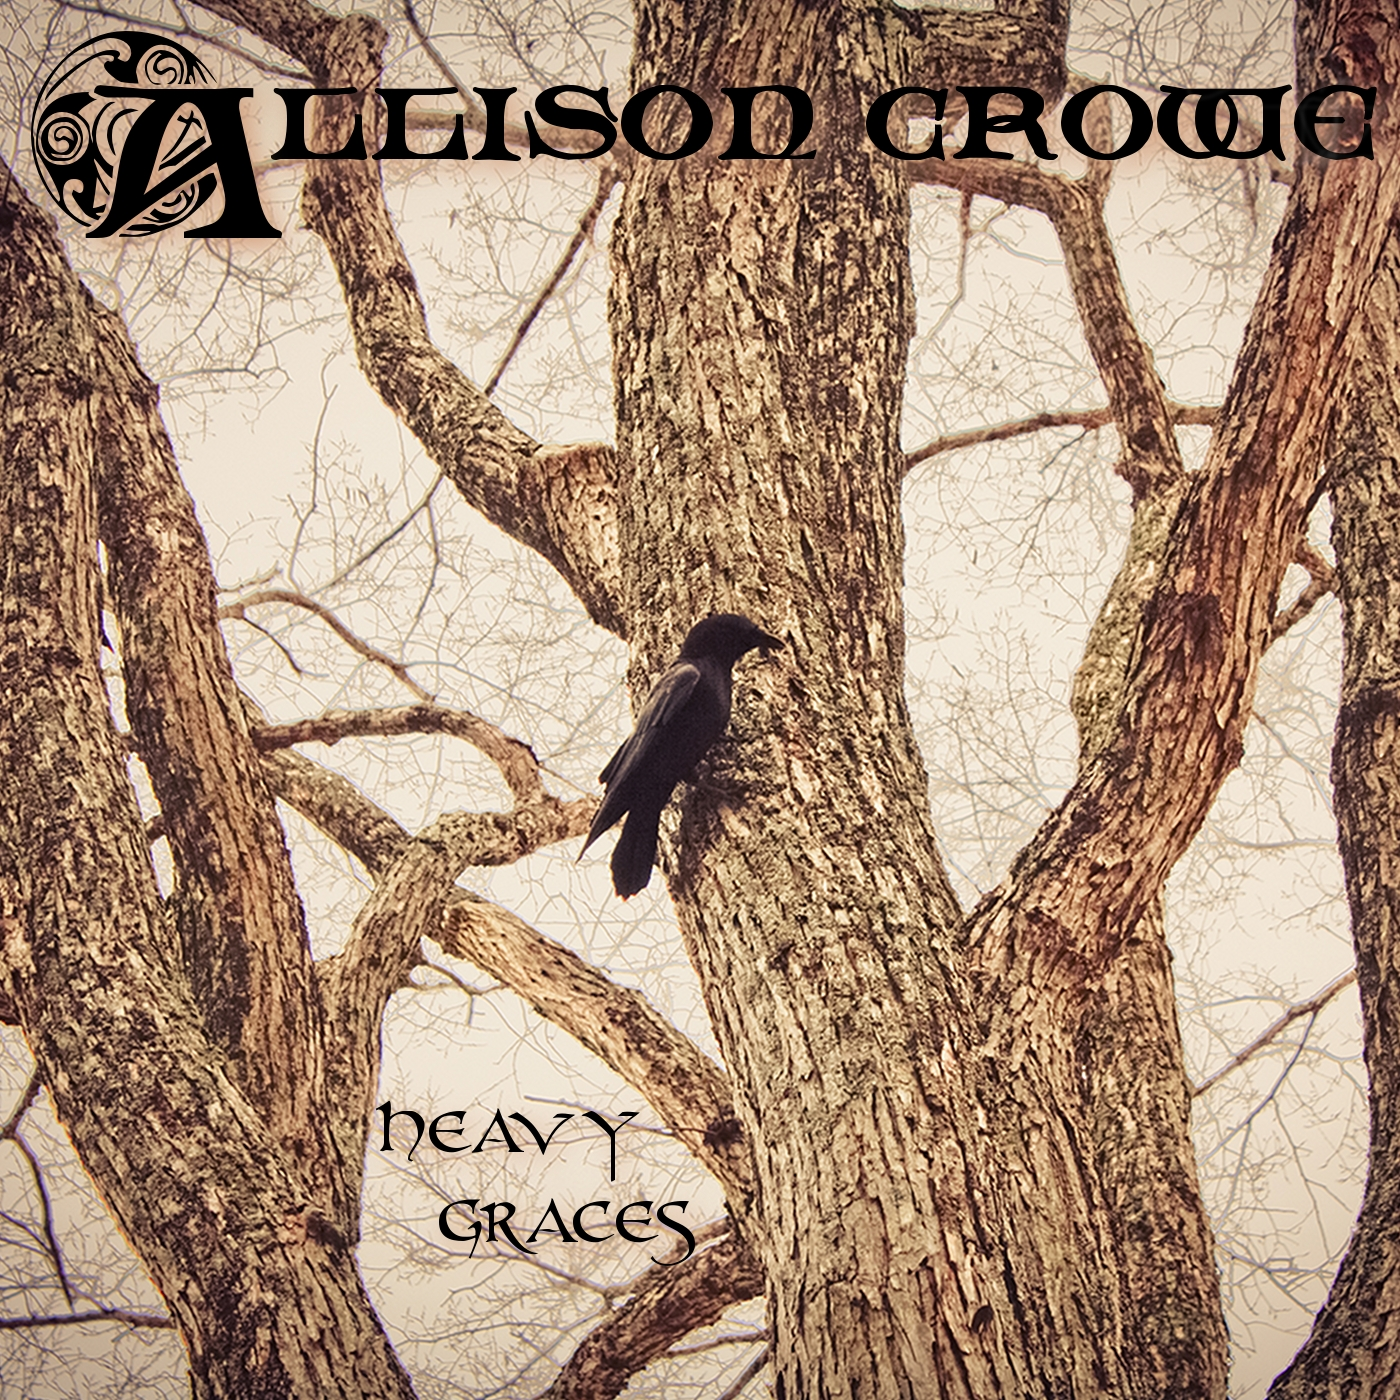 Through These Heavy Graces - Allison Crowe - music set 2013